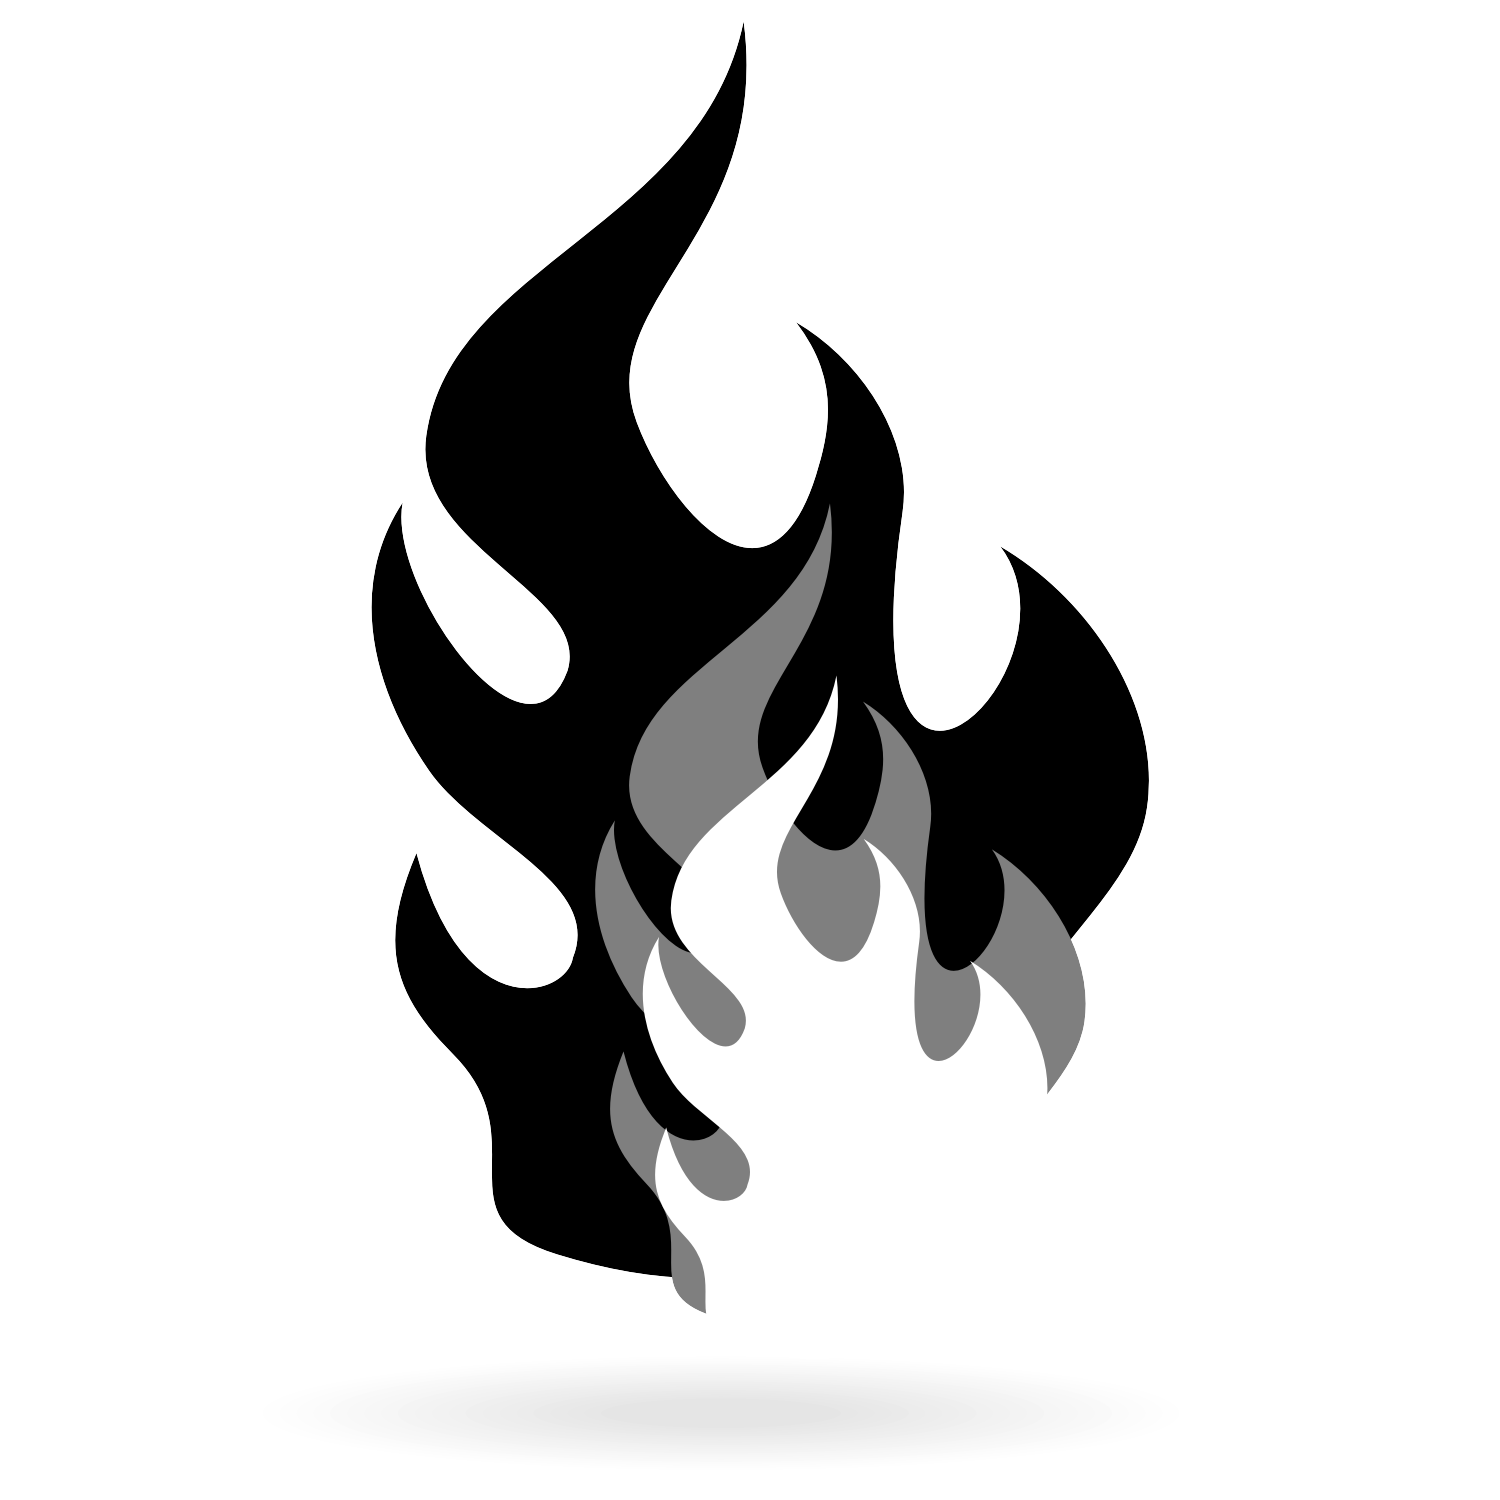 Black Flame Vector Download Free Vector At Shmector Com Black And White Drawing Fire Icons Fire Image